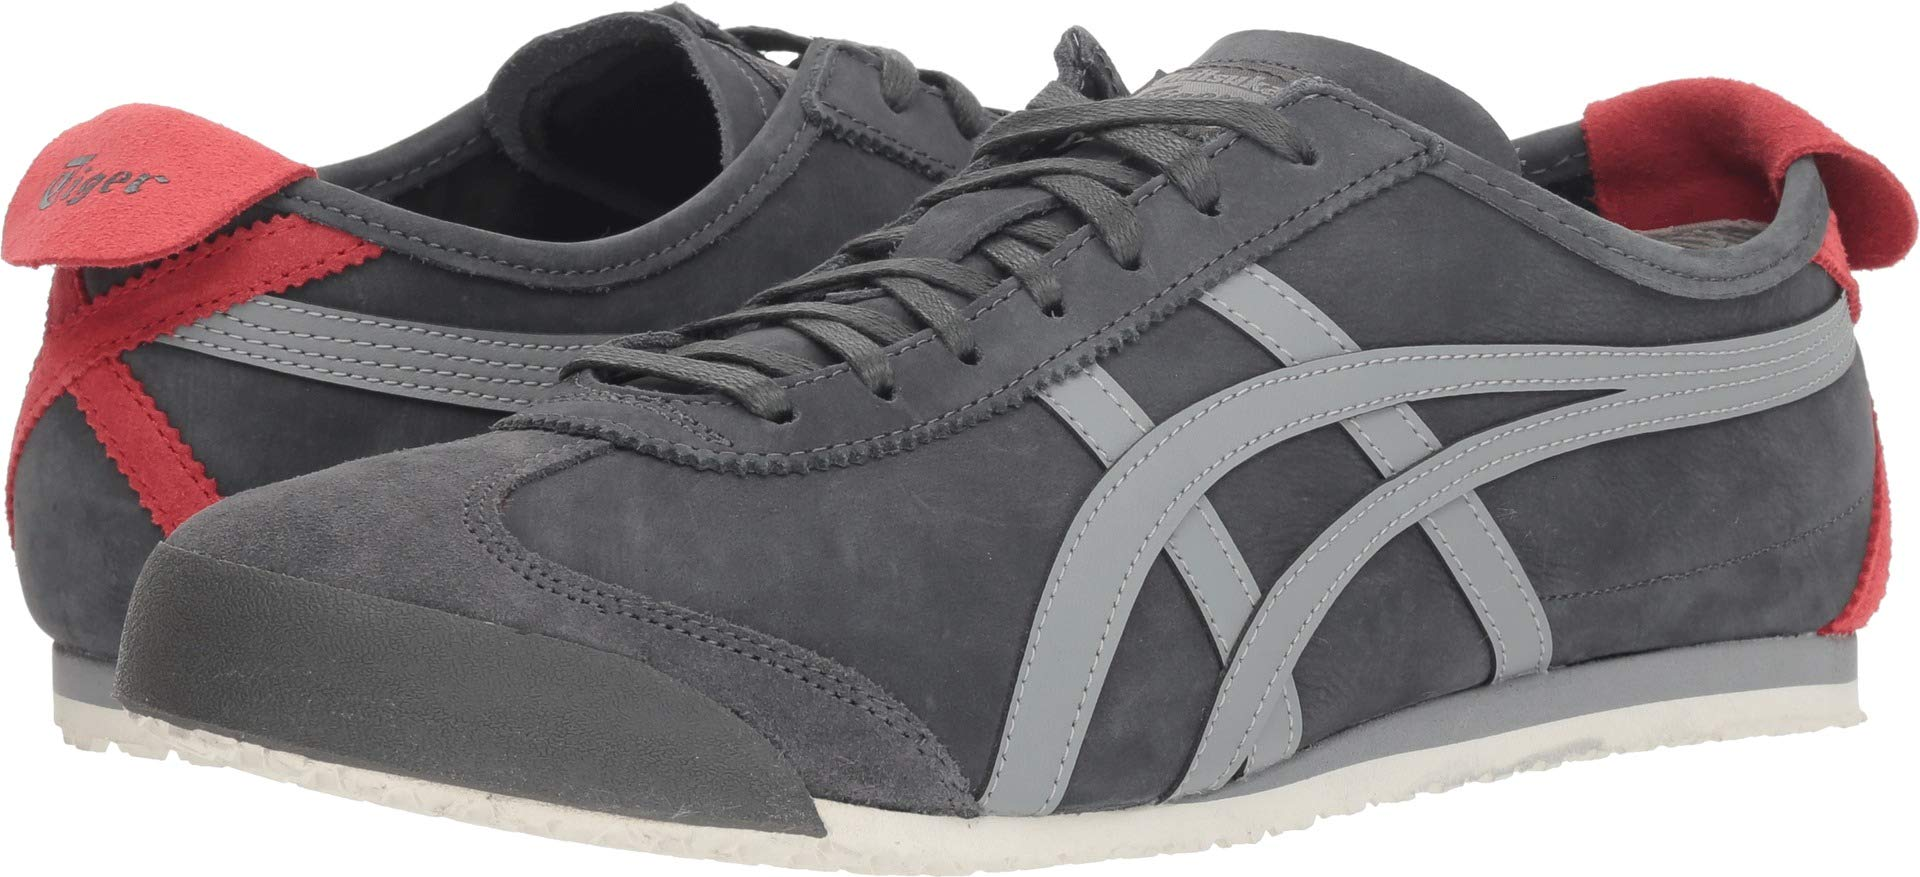 wholesale dealer a8dda 5fd69 Onitsuka Tiger by Asics Unisex Mexico 66 Dark Grey/Dark Taupe 11.5 M US  Medium